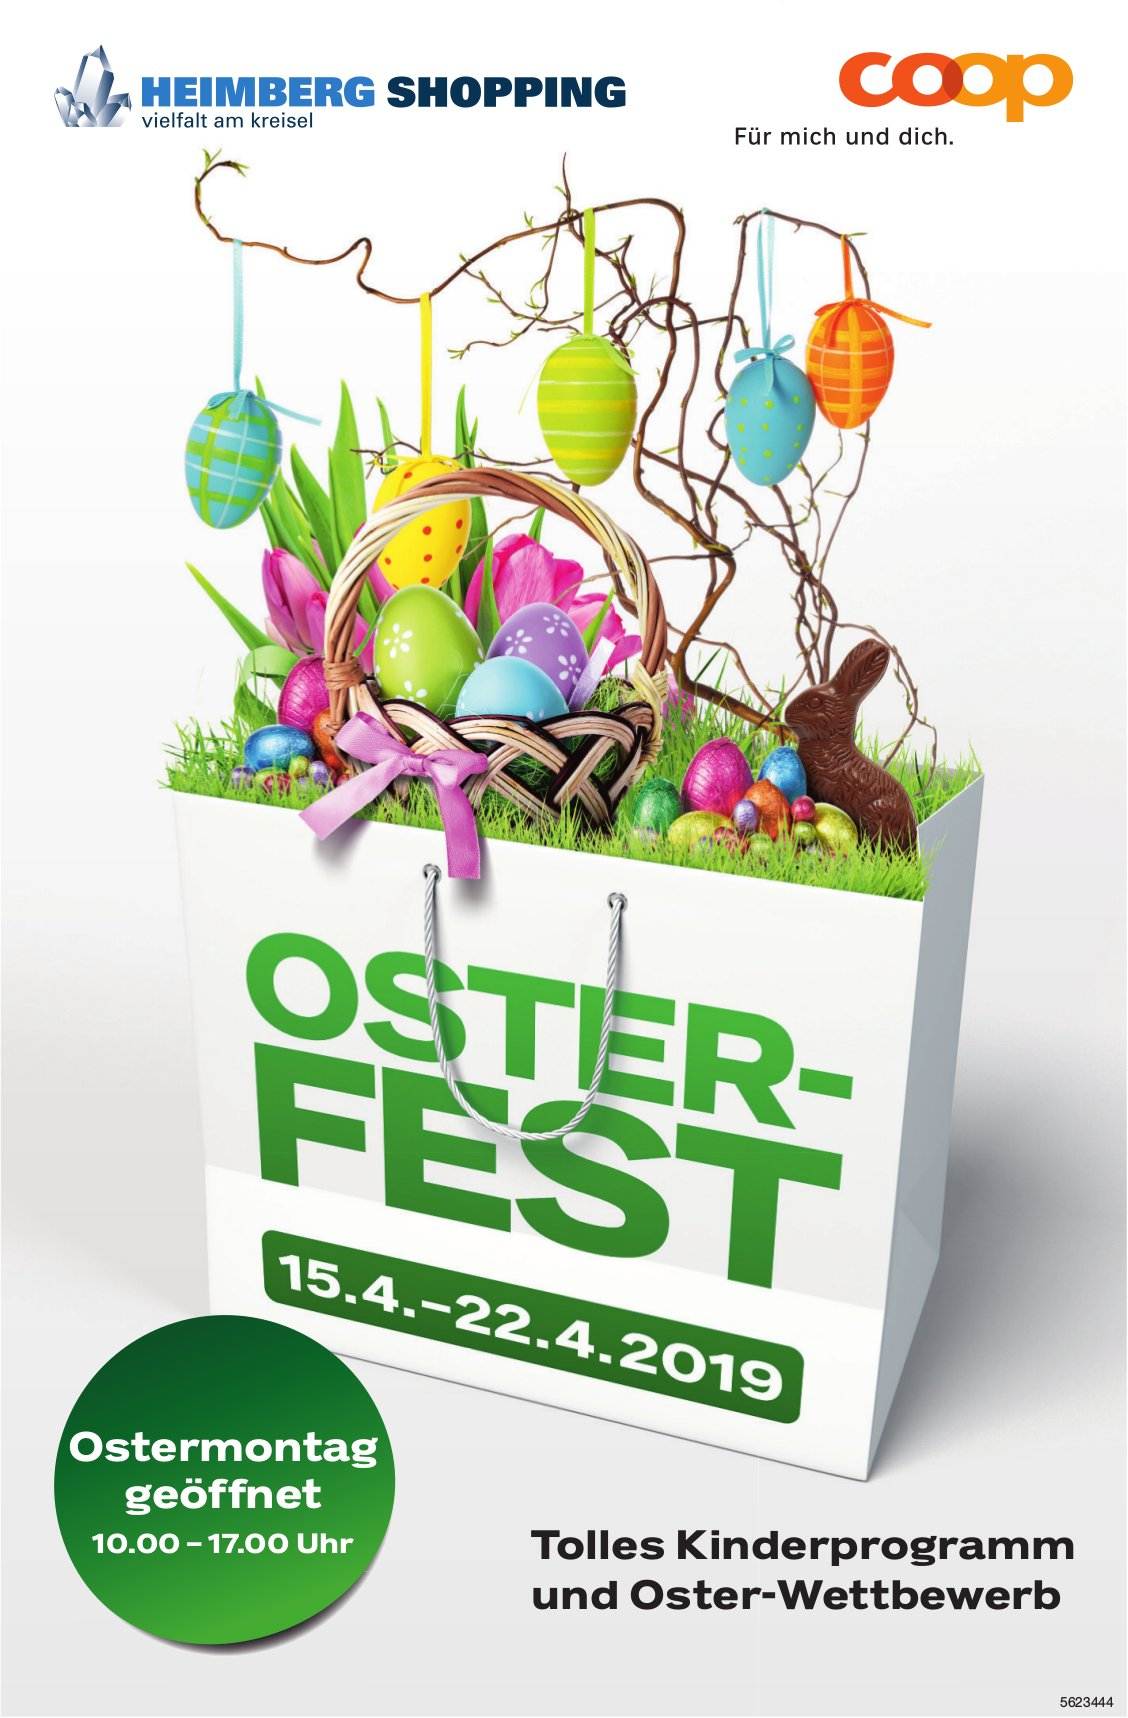 COOP Heimberg Shopping - OSTERFEST, 15. - 22. April